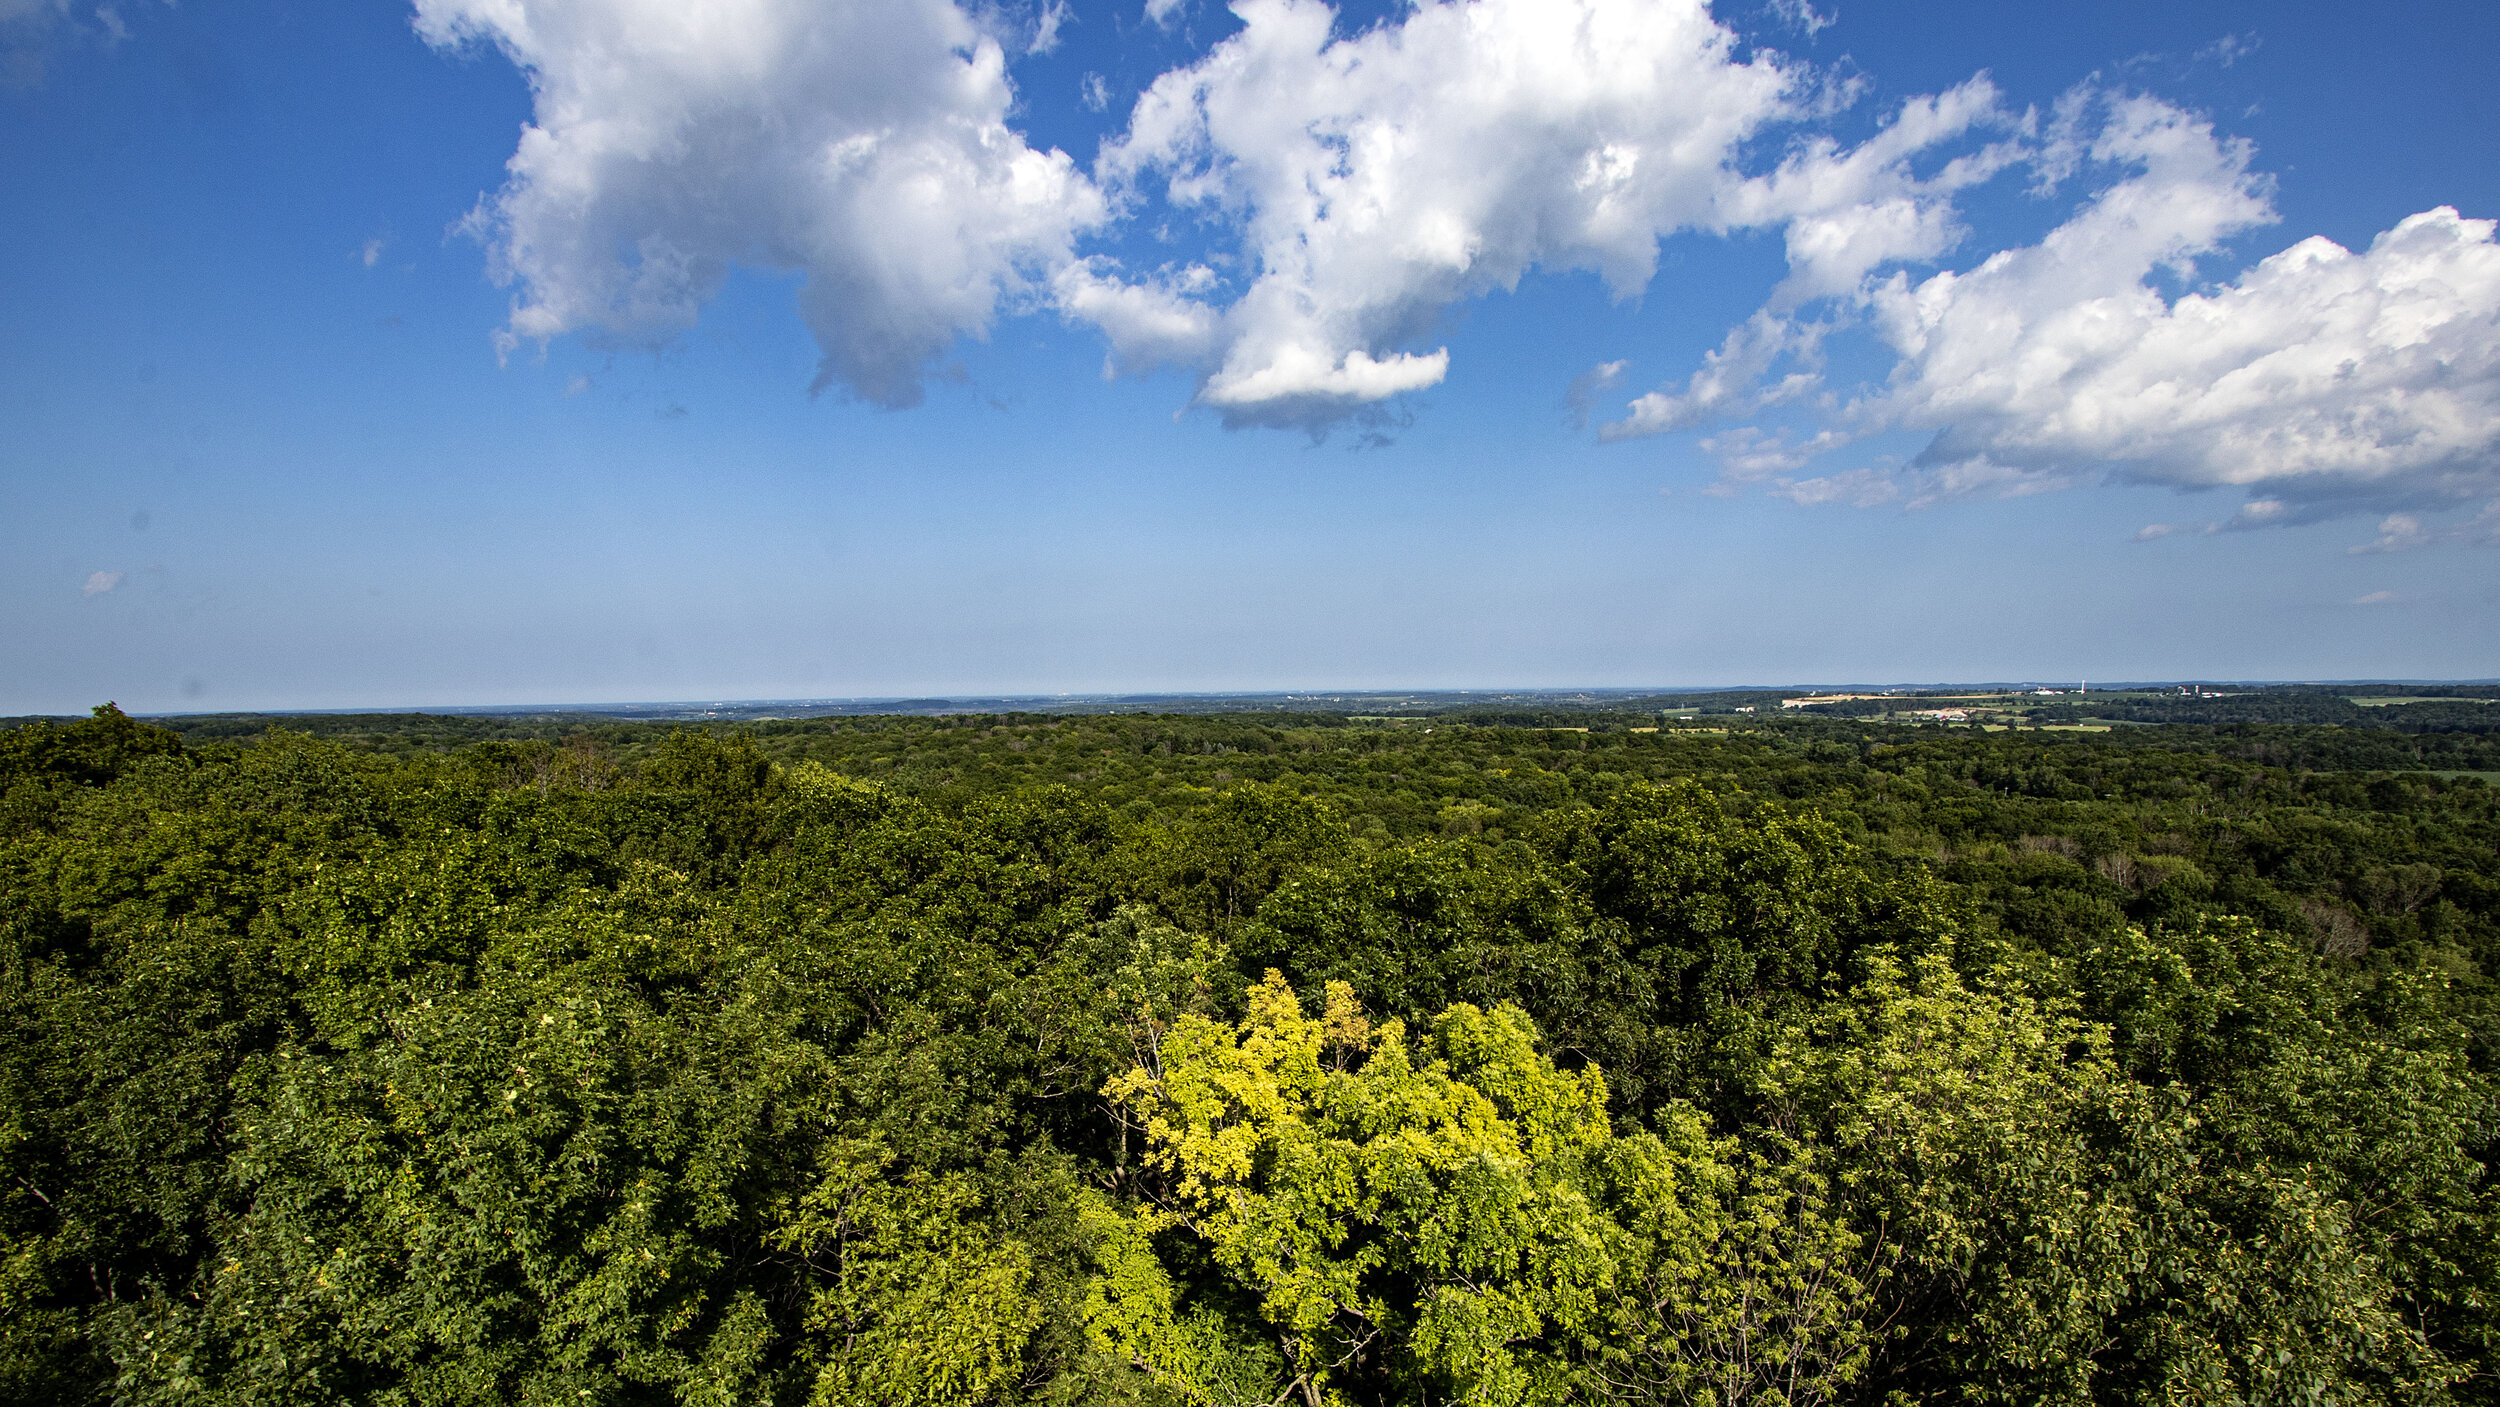 Kettle Moraine Northern Unit_Parnell Tower_Top of Tower_Tree Tops_014_20190723_IMG_0712.jpg